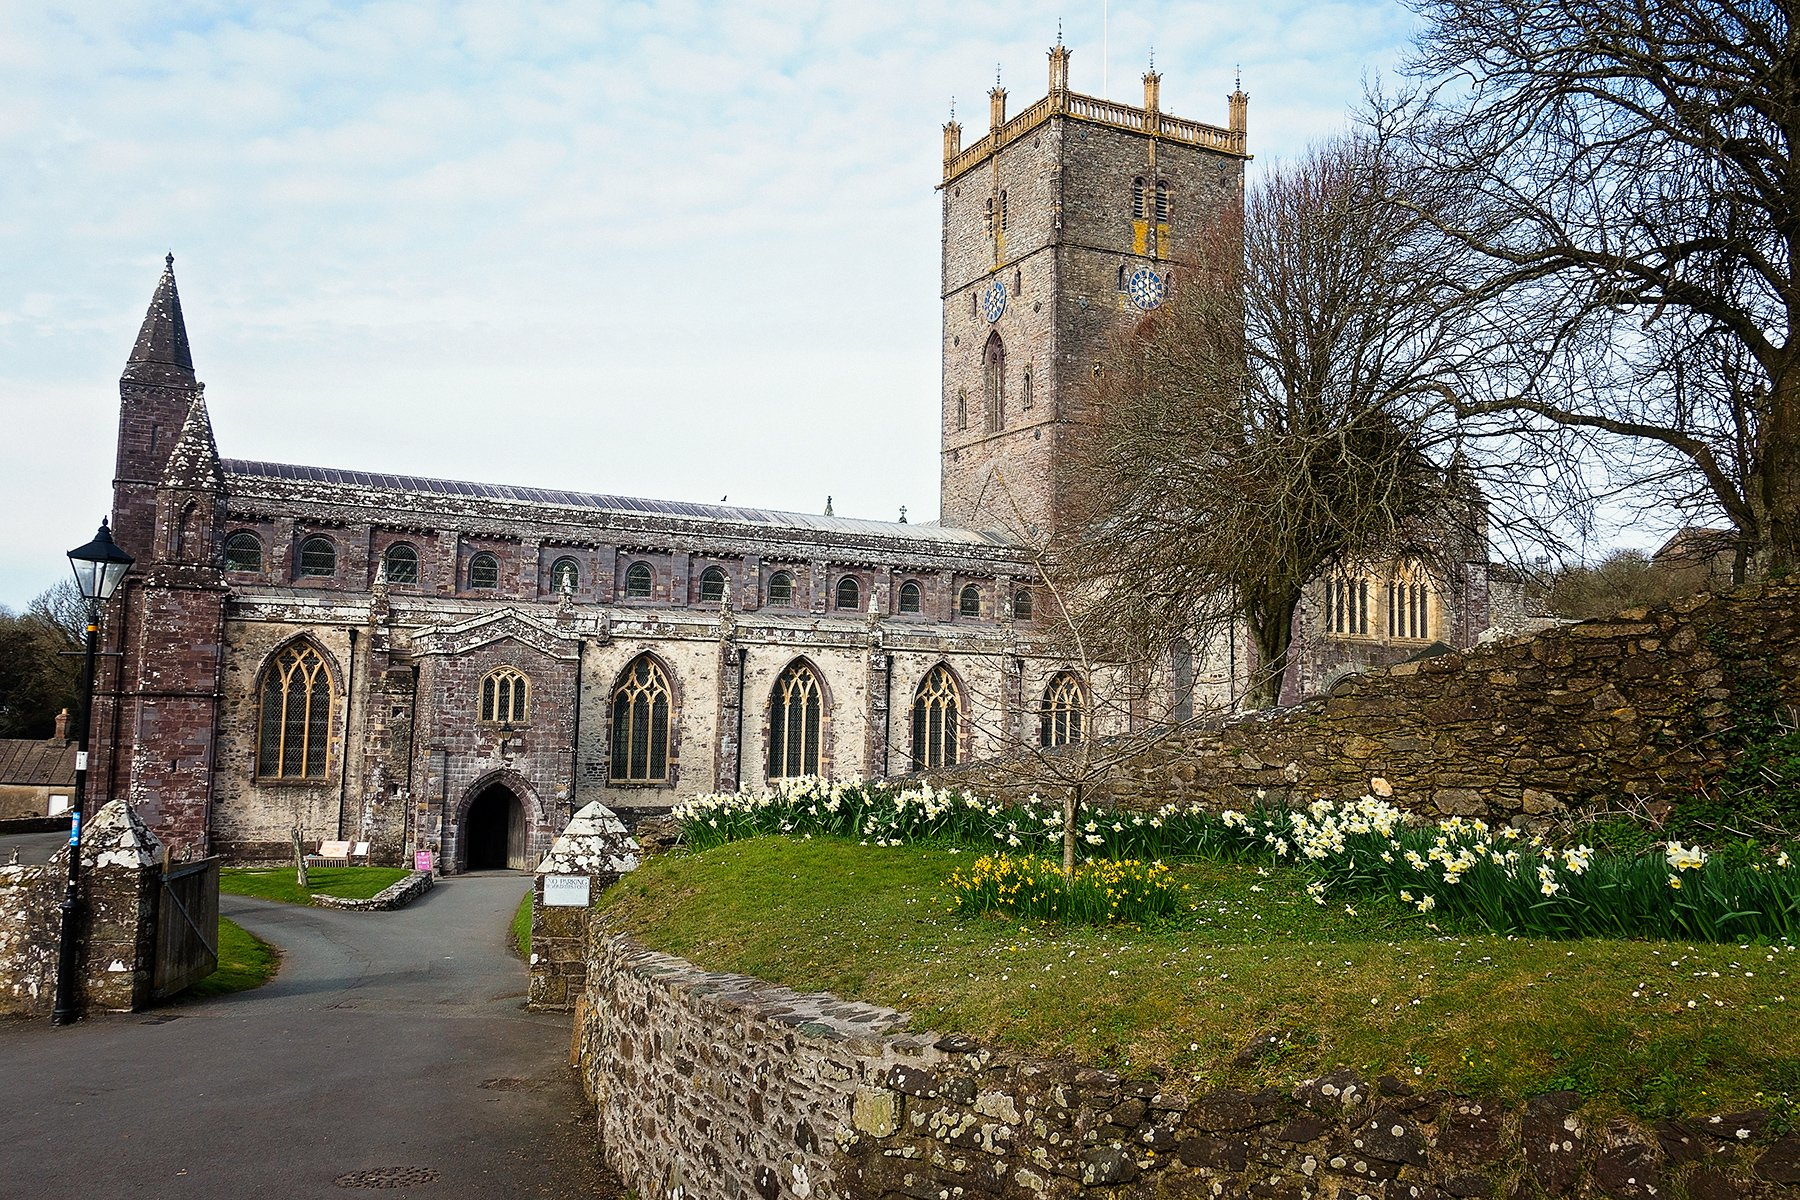 St. David's Cathedral in Pembrokeshire